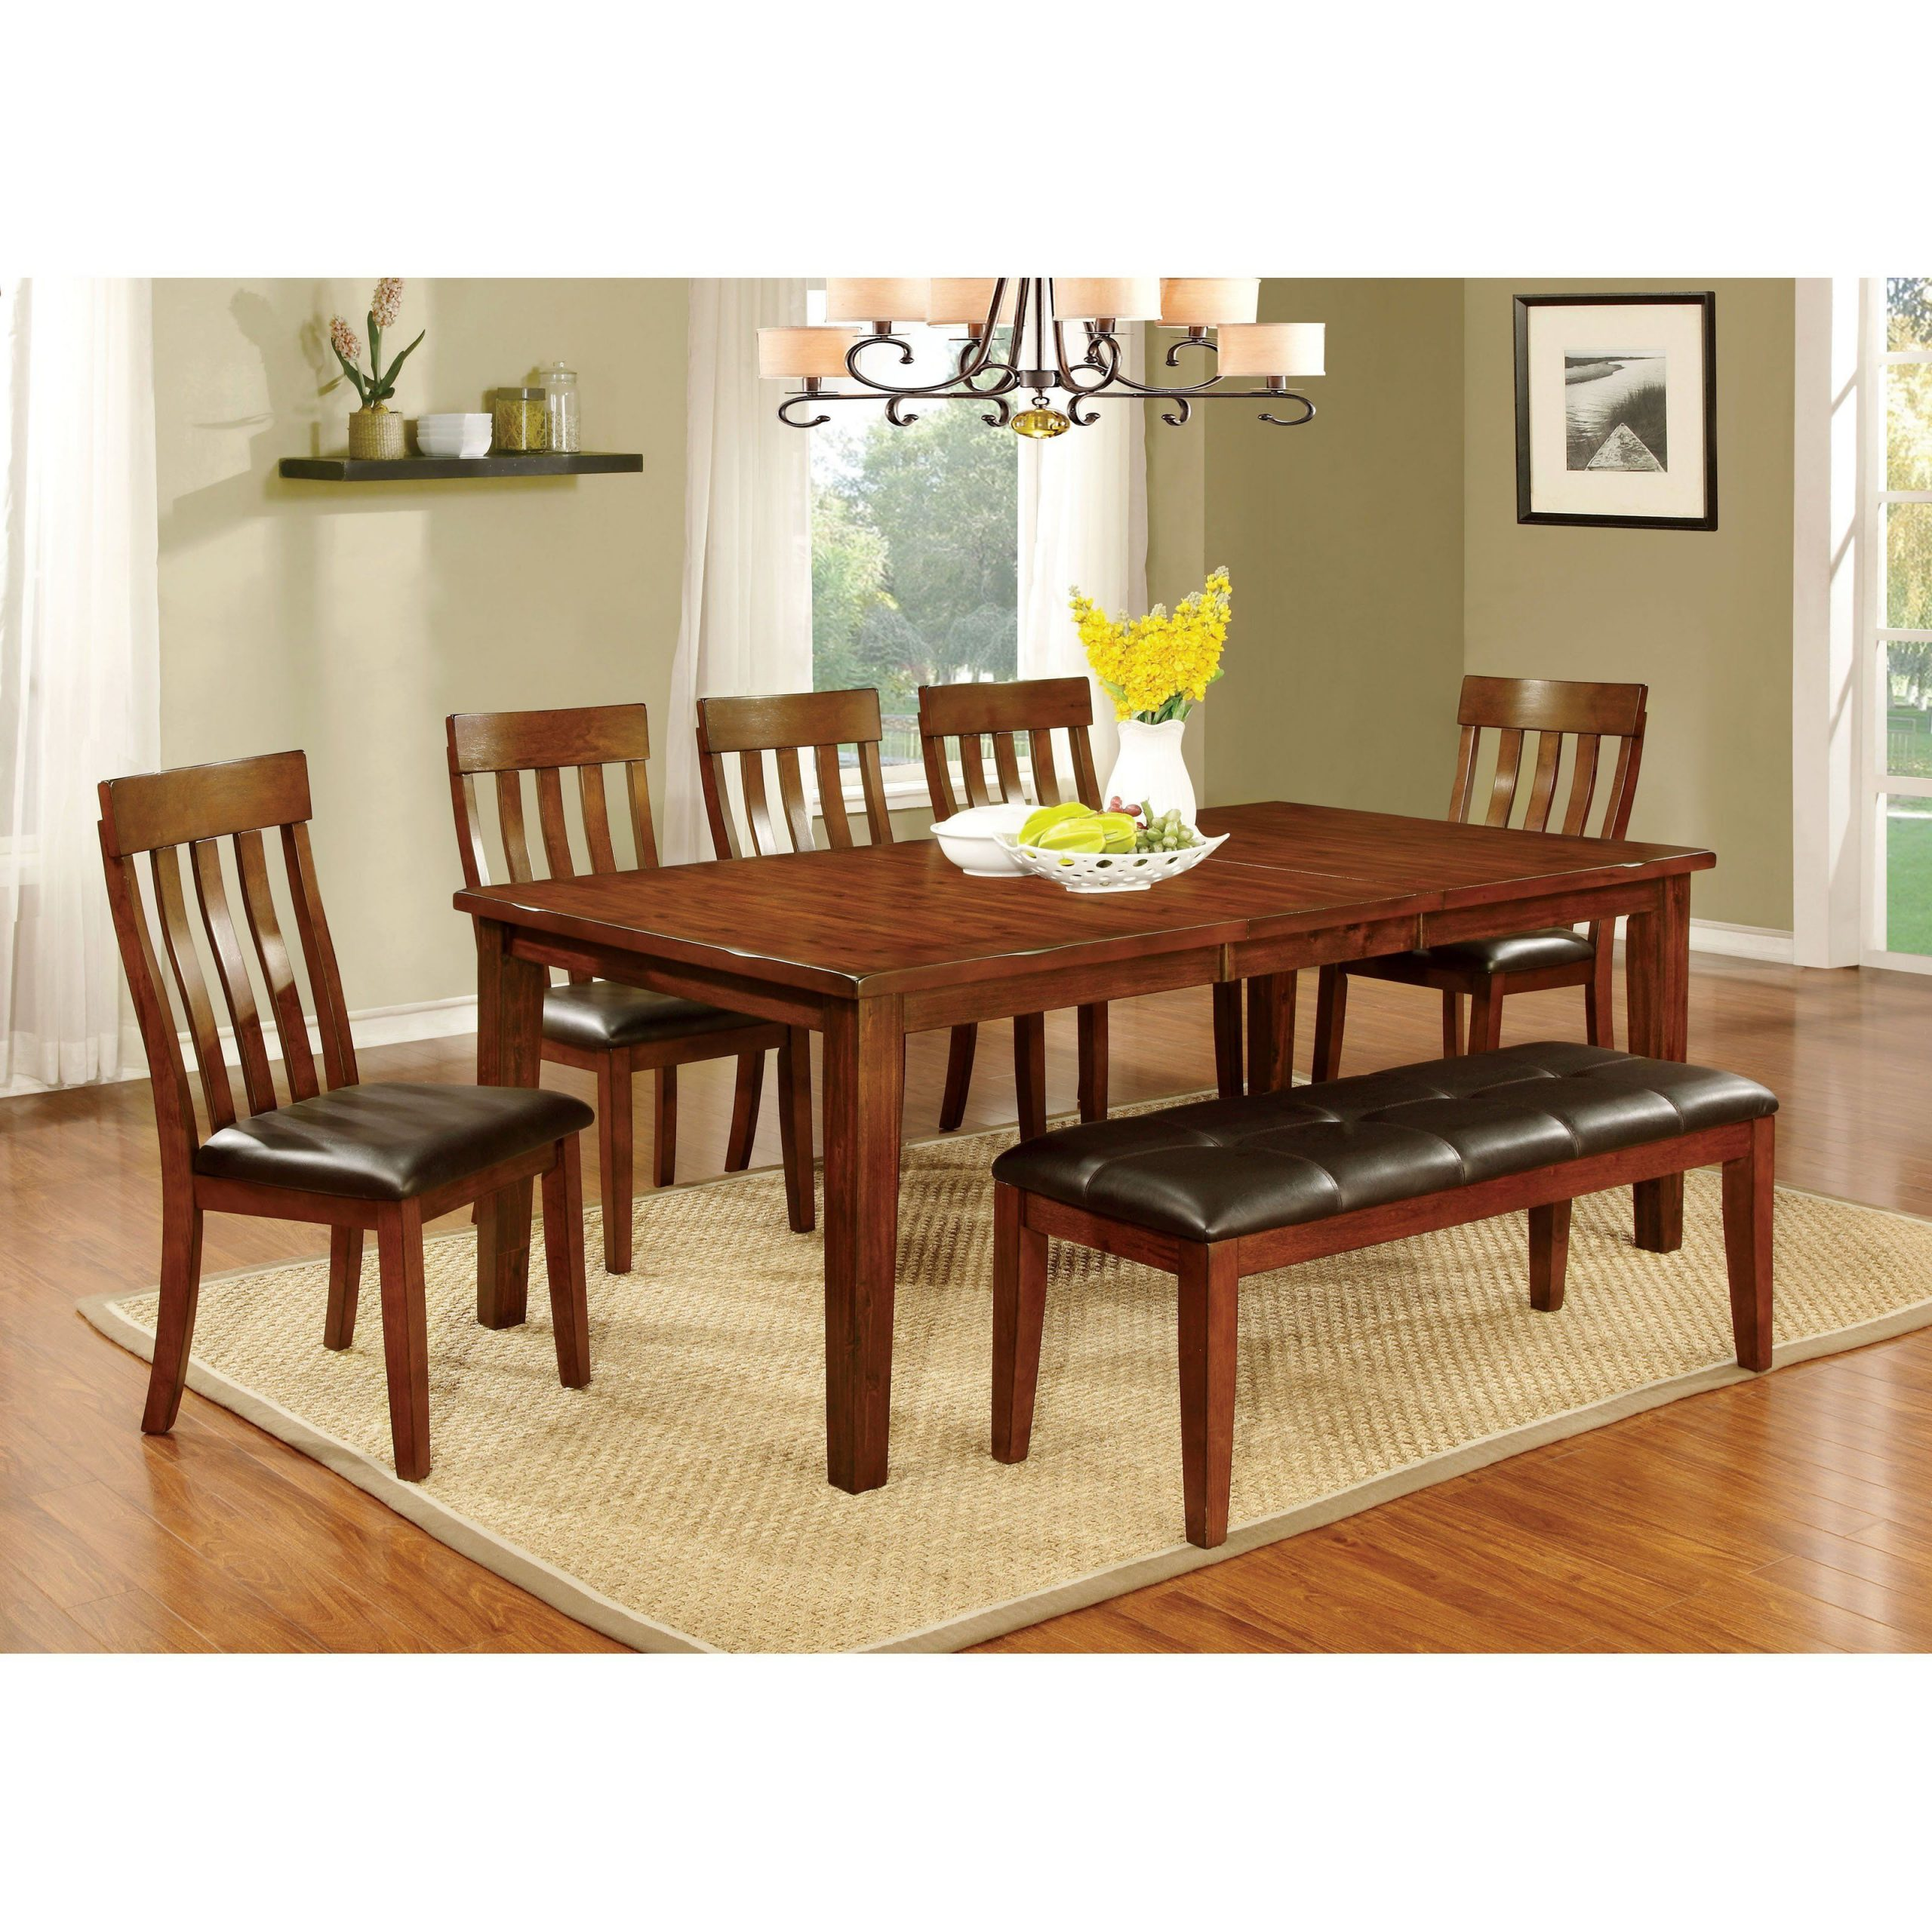 Furniture Of America Ginsberg Transitional 6 Piece Dining In Widely Used Transitional 6 Seating Casual Dining Tables (View 2 of 25)